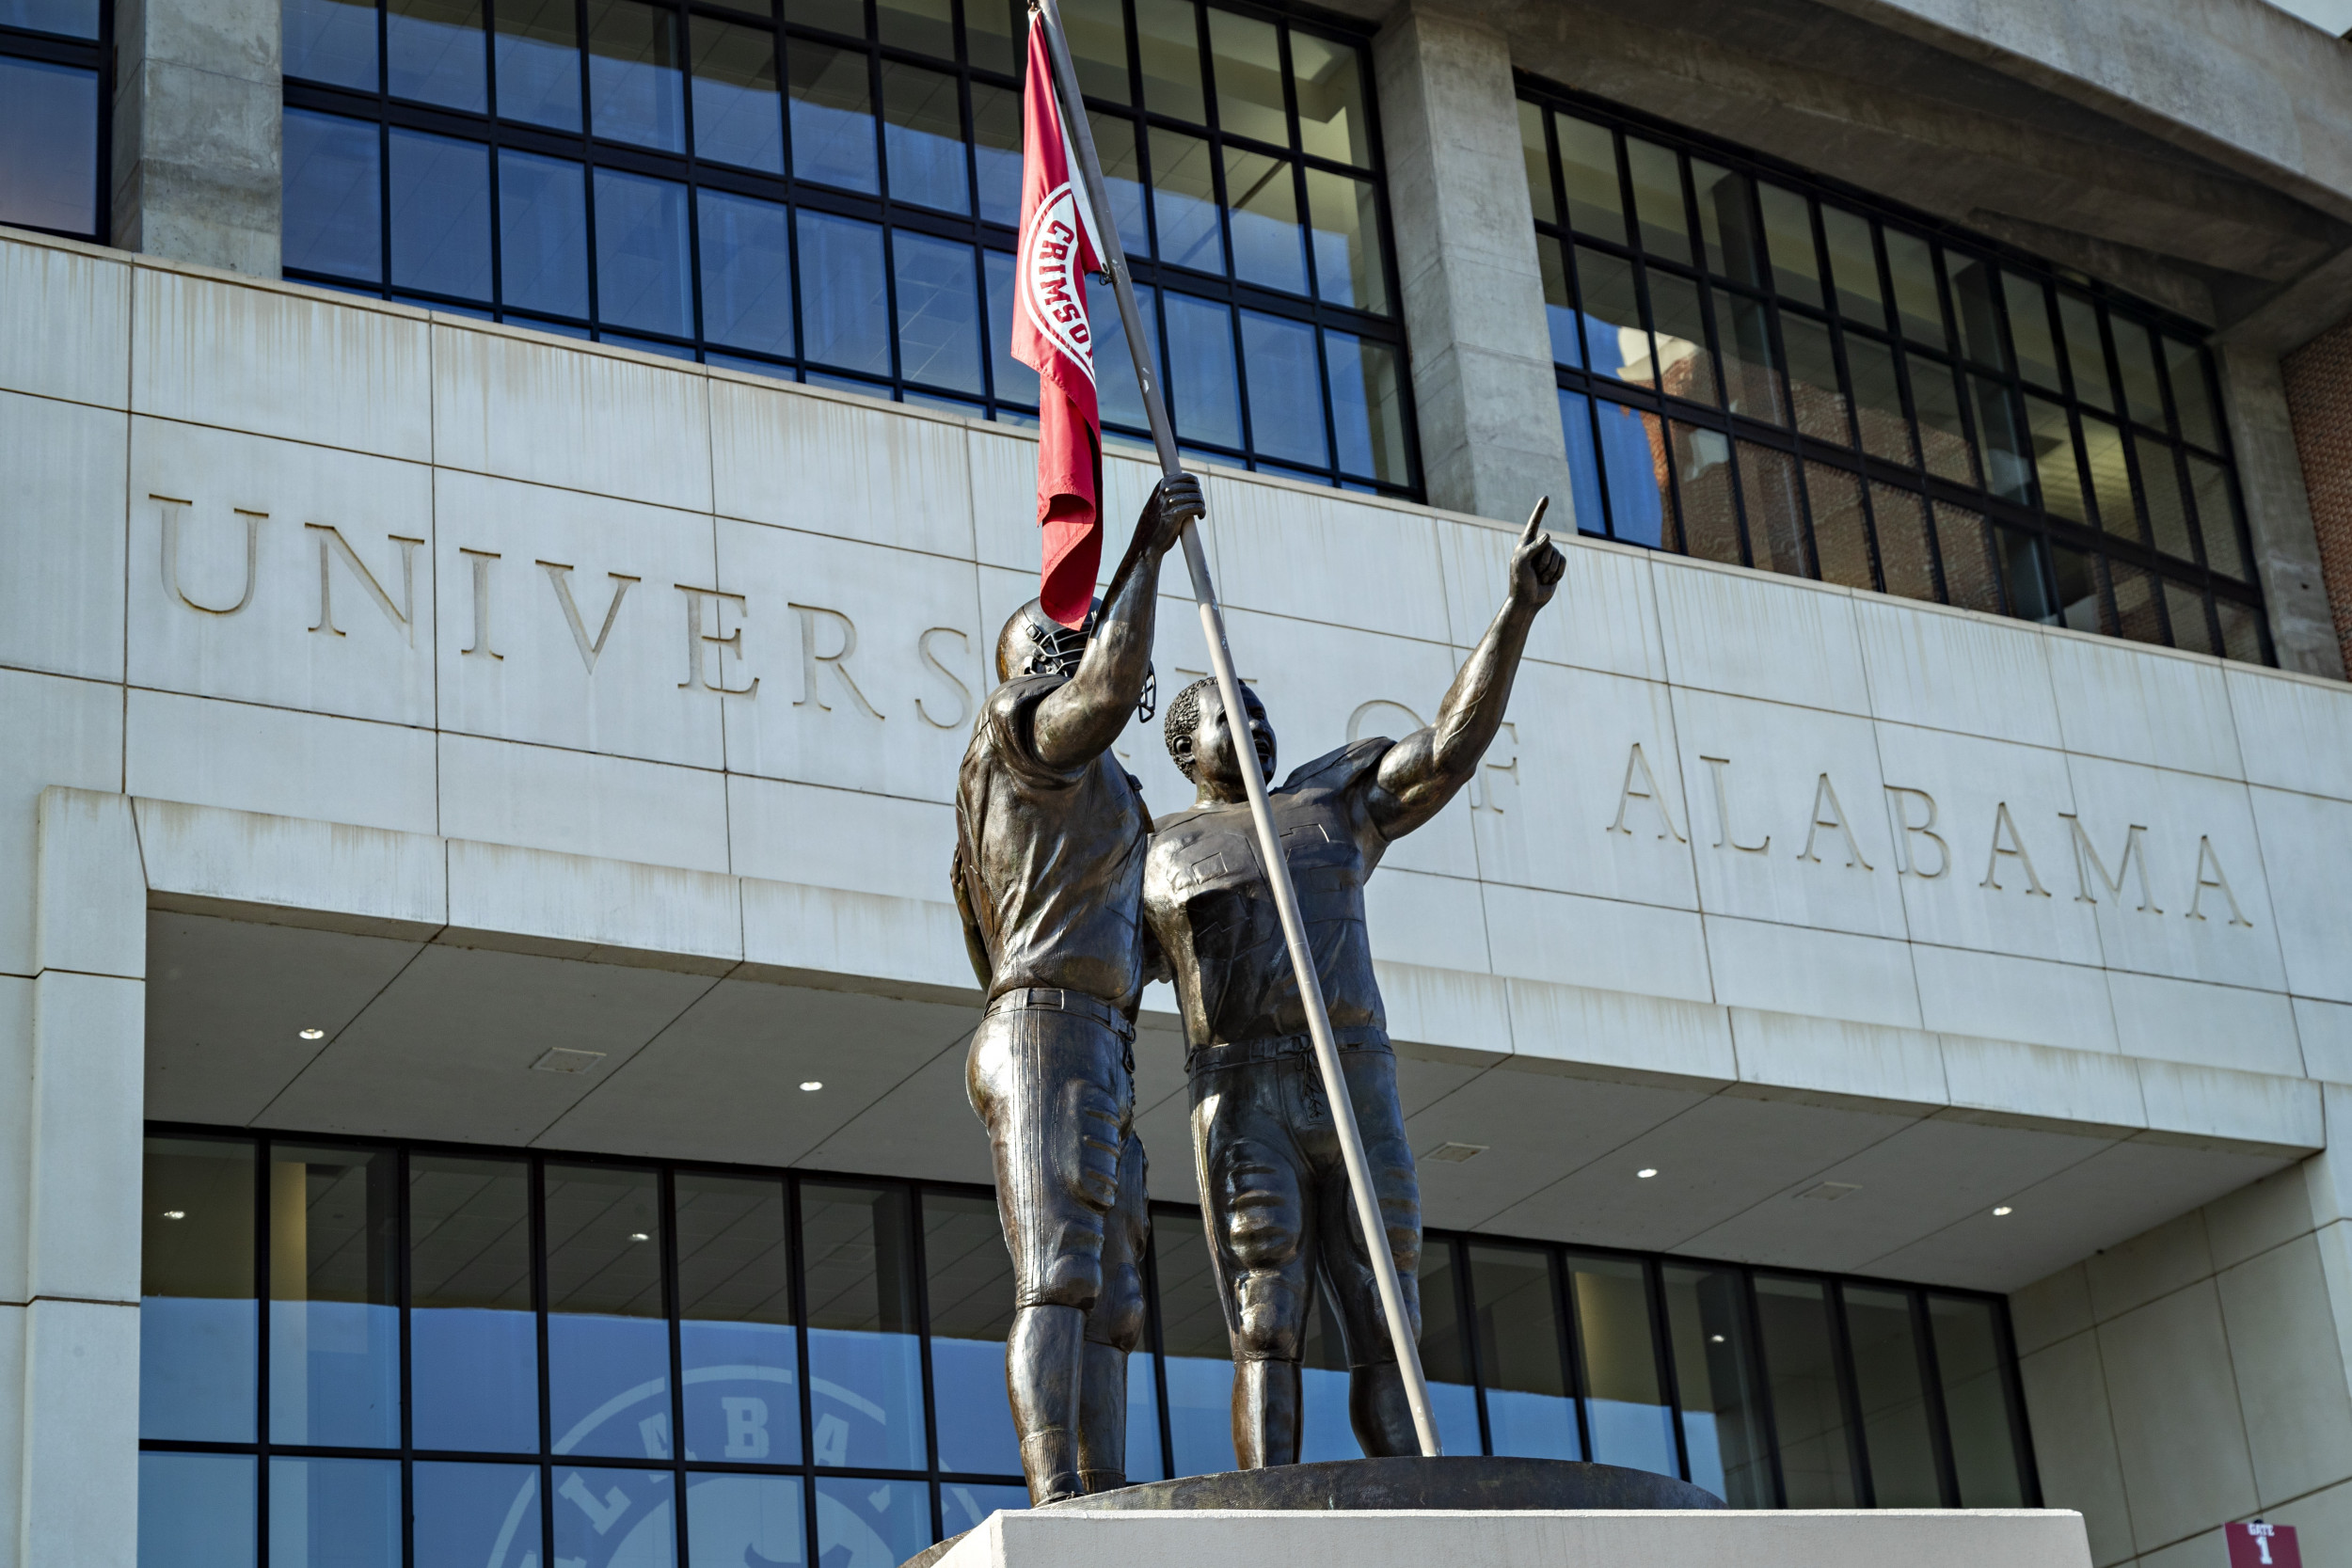 University of Alabama reports 566 COVID-19 cases a week after classes start